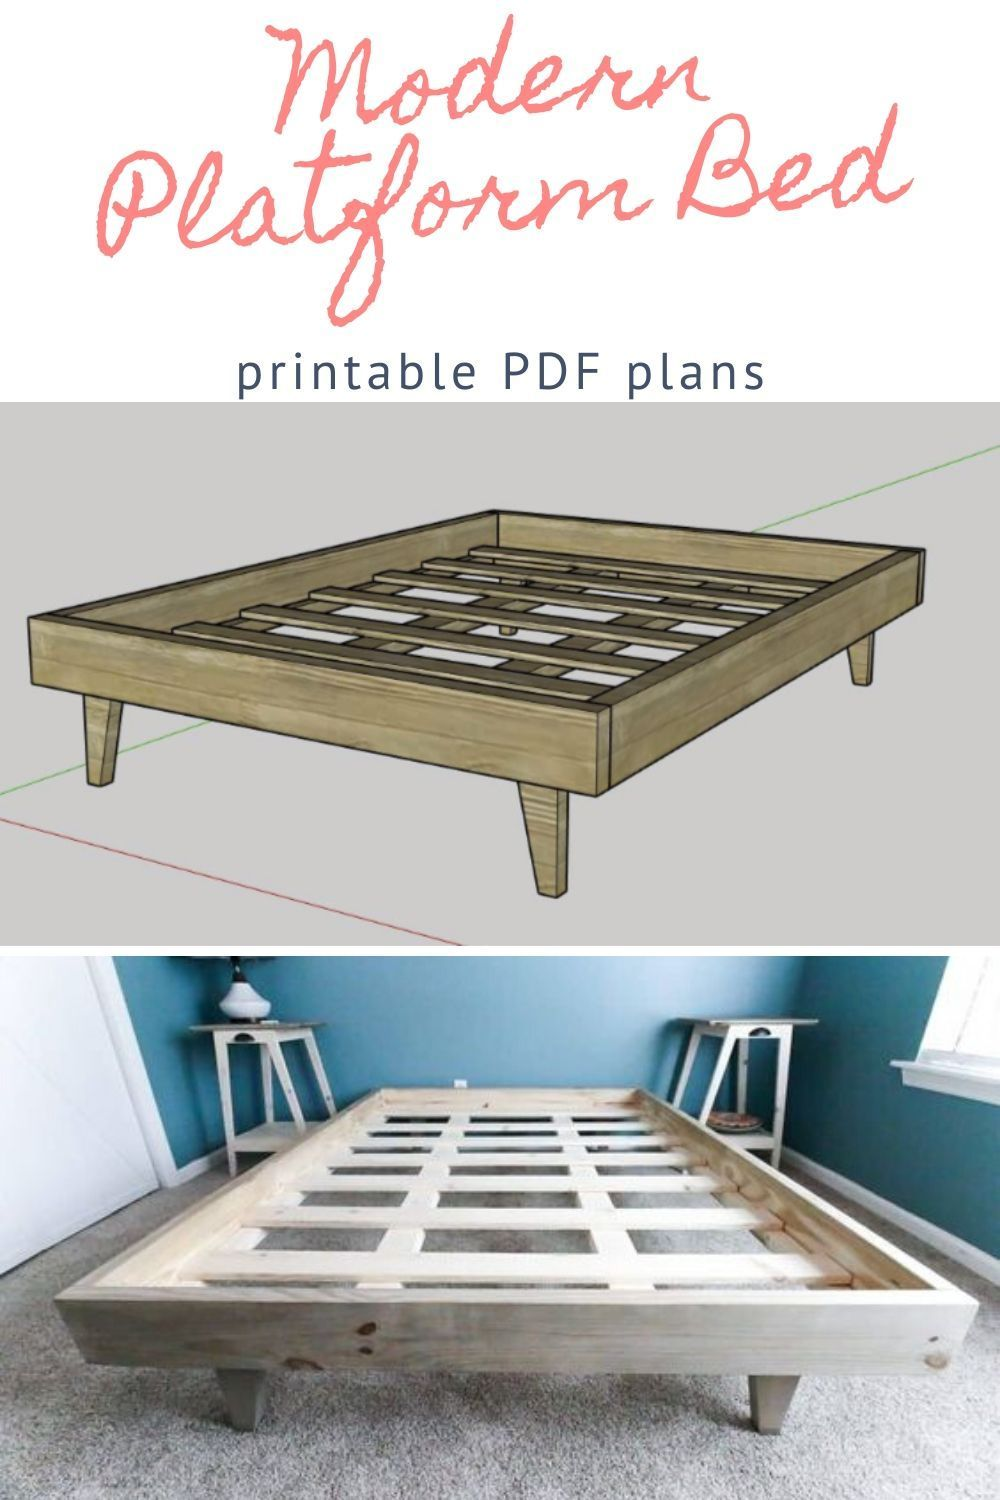 Double Full Size Modern Platform Bed Printable Pdf Woodworking